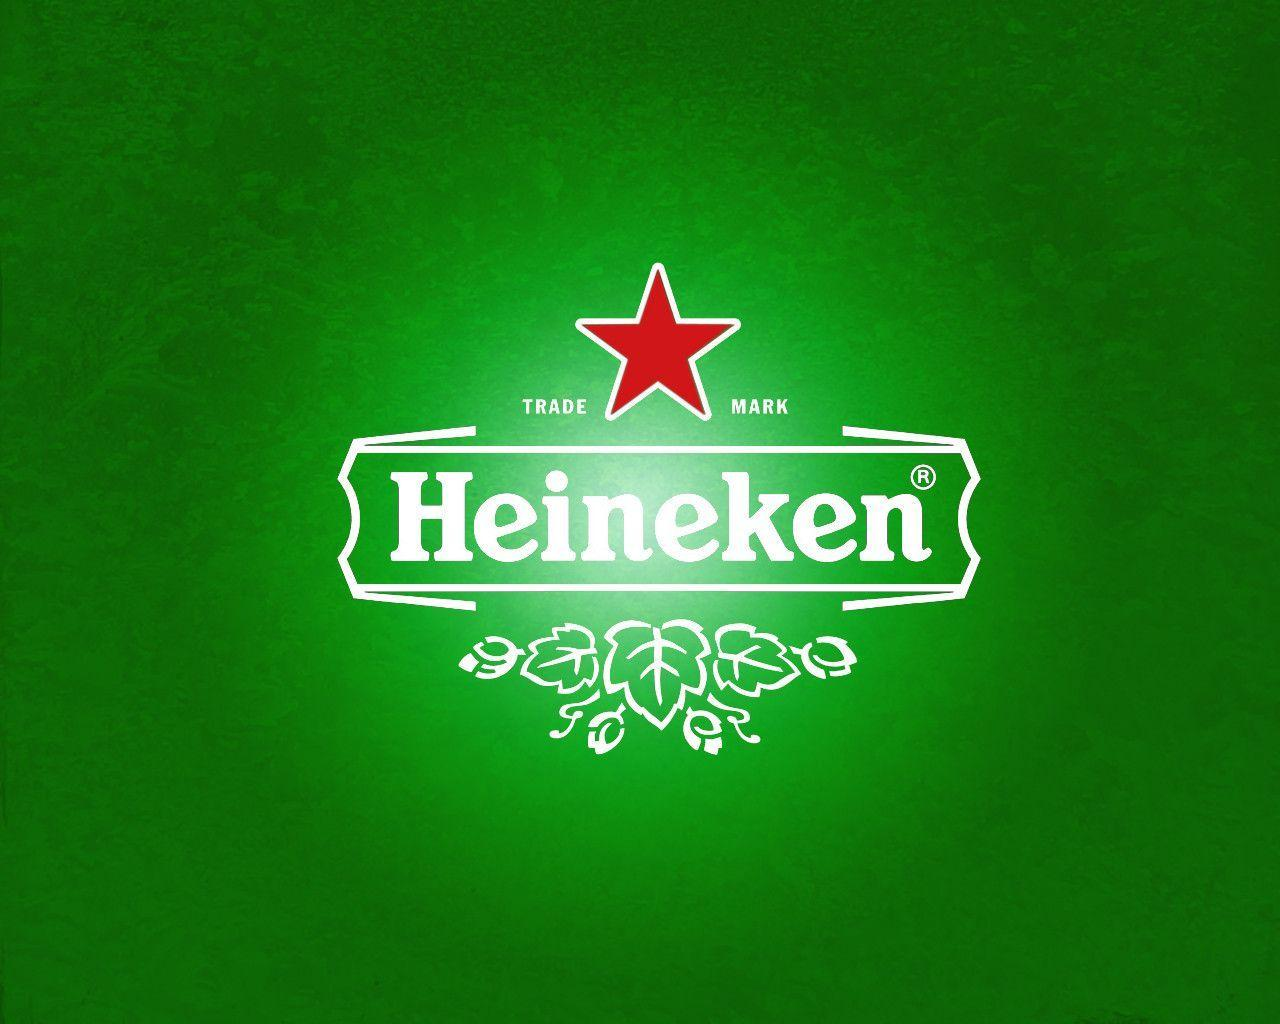 Heineken Wallpapers - Wallpaper Cave